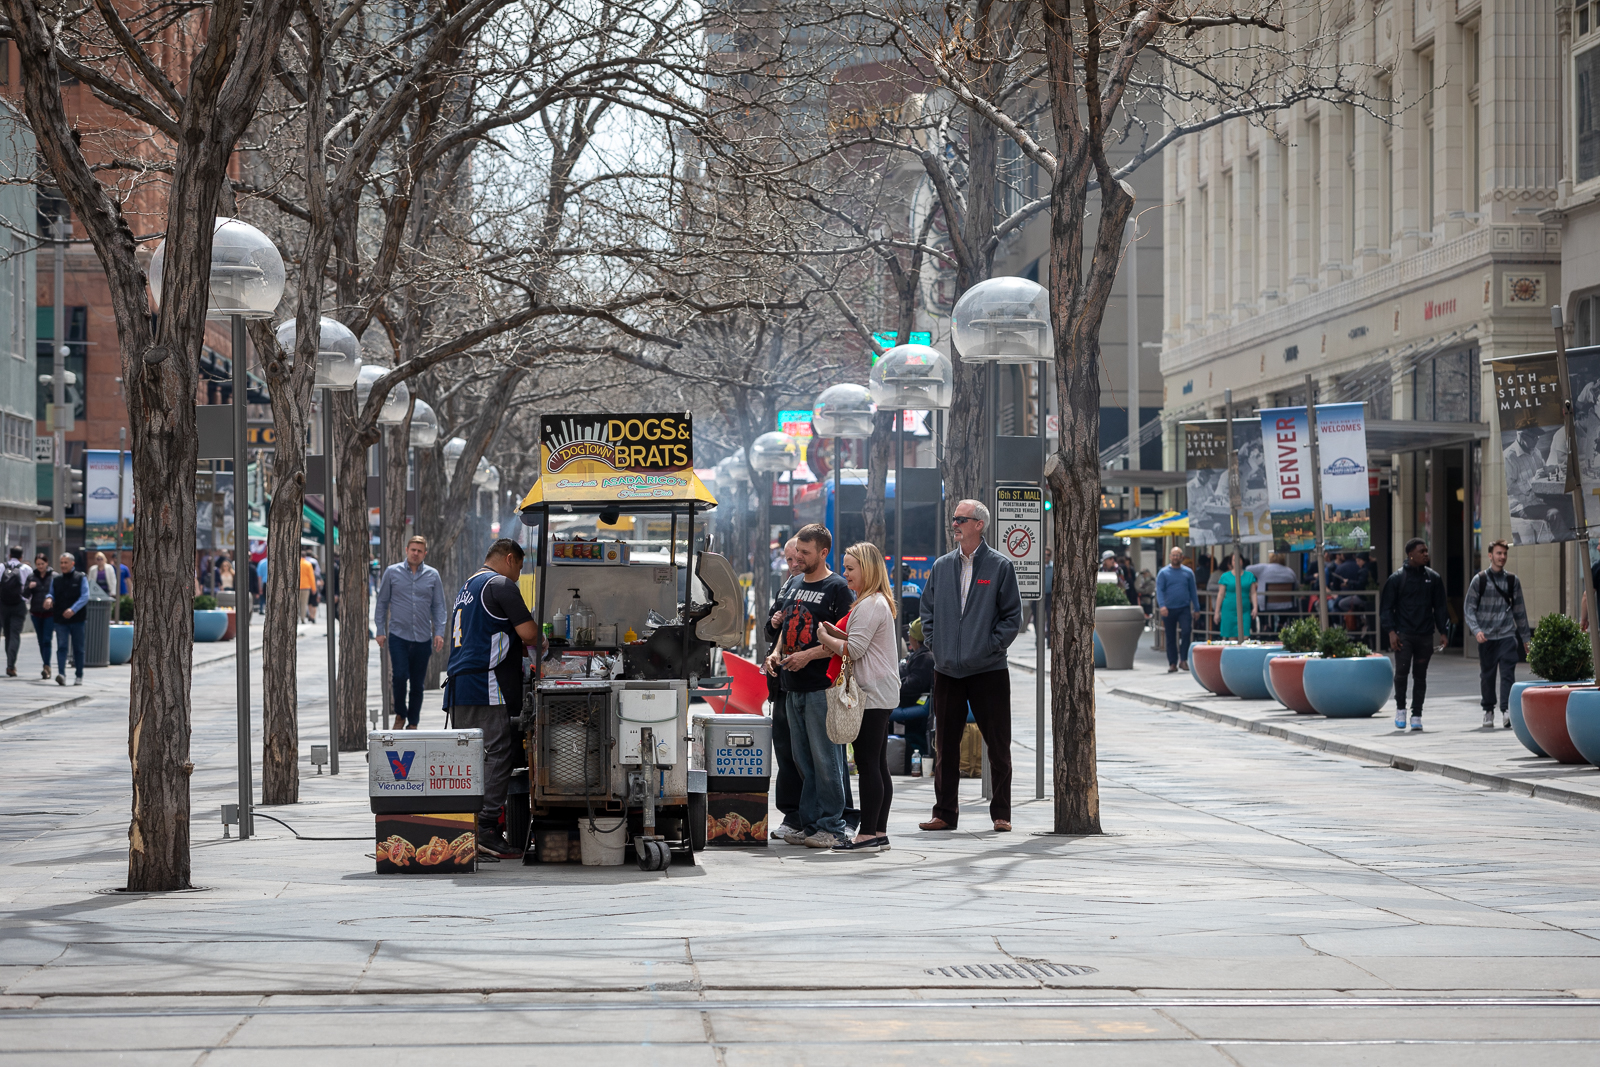 Under the renovation plans, buses would run in the center of 16th St., allowing for wider sidewalks where kiosks would be moved. Photo: Andy Bosselman